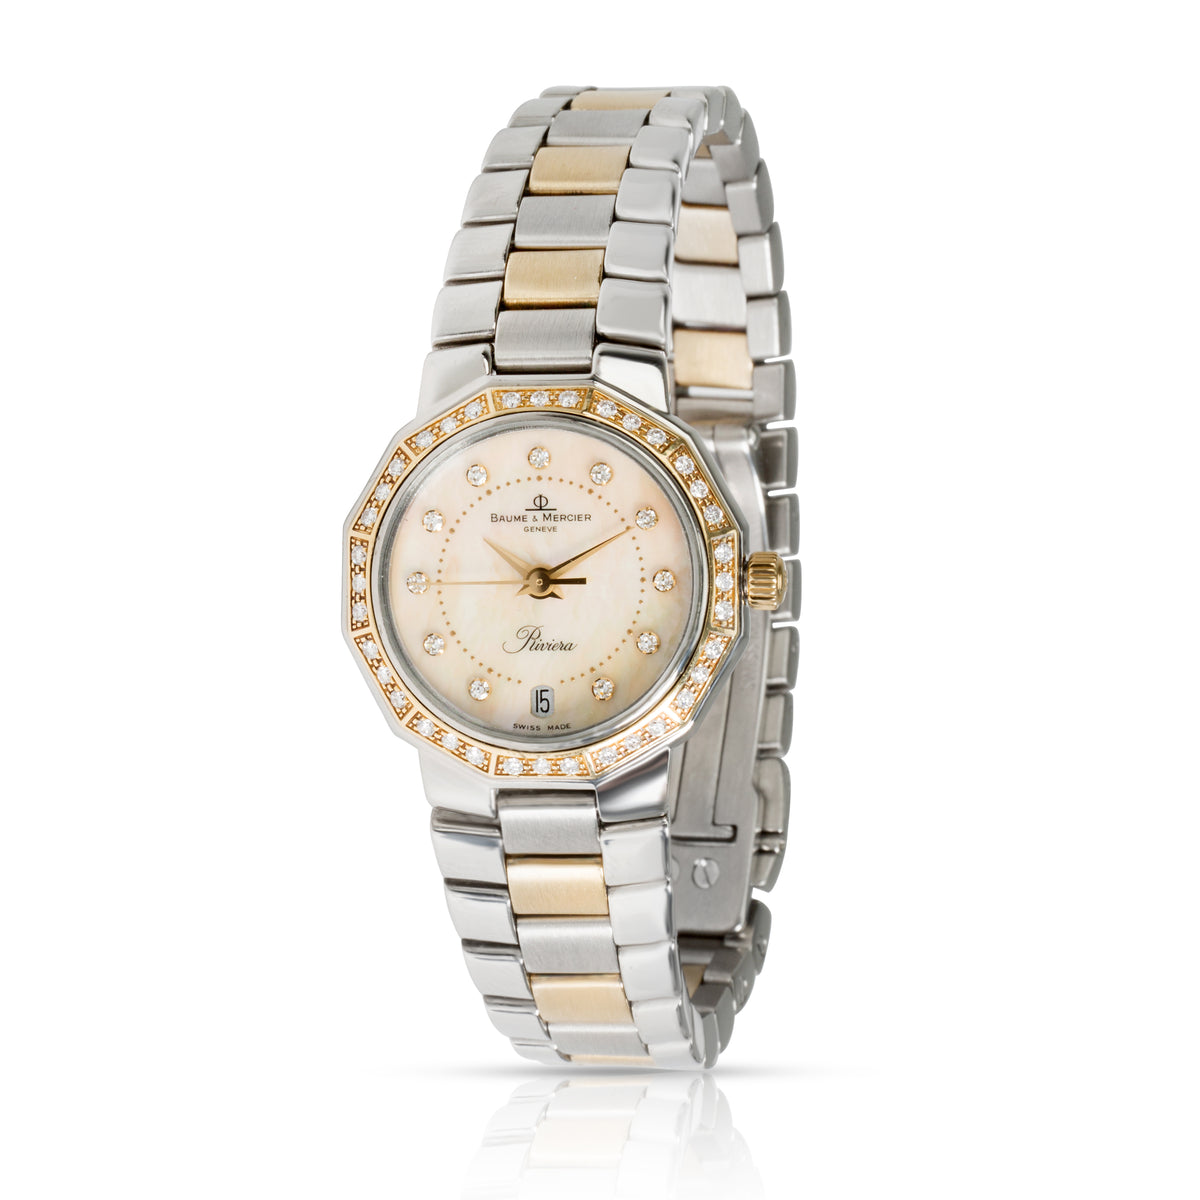 Baume & Mercier Riviera 5231 Women's Watch in 18kt Stainless Steel/Yellow Gold